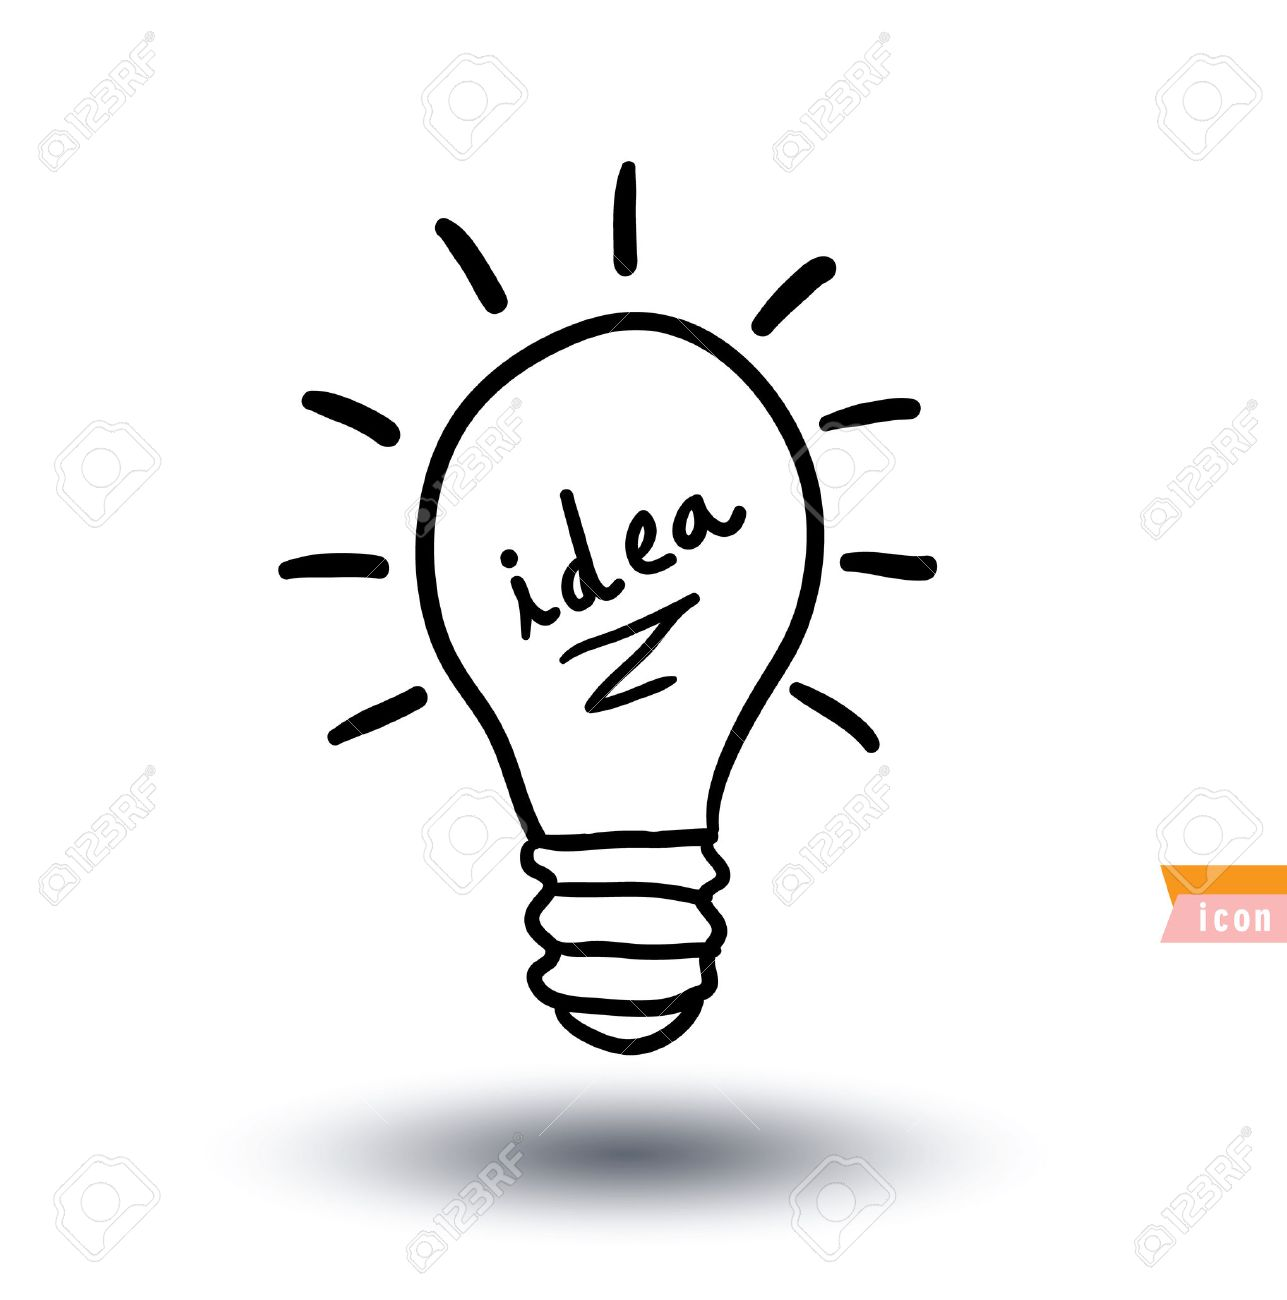 Bulb Lamp Idea Icon Illustration Stock Vector